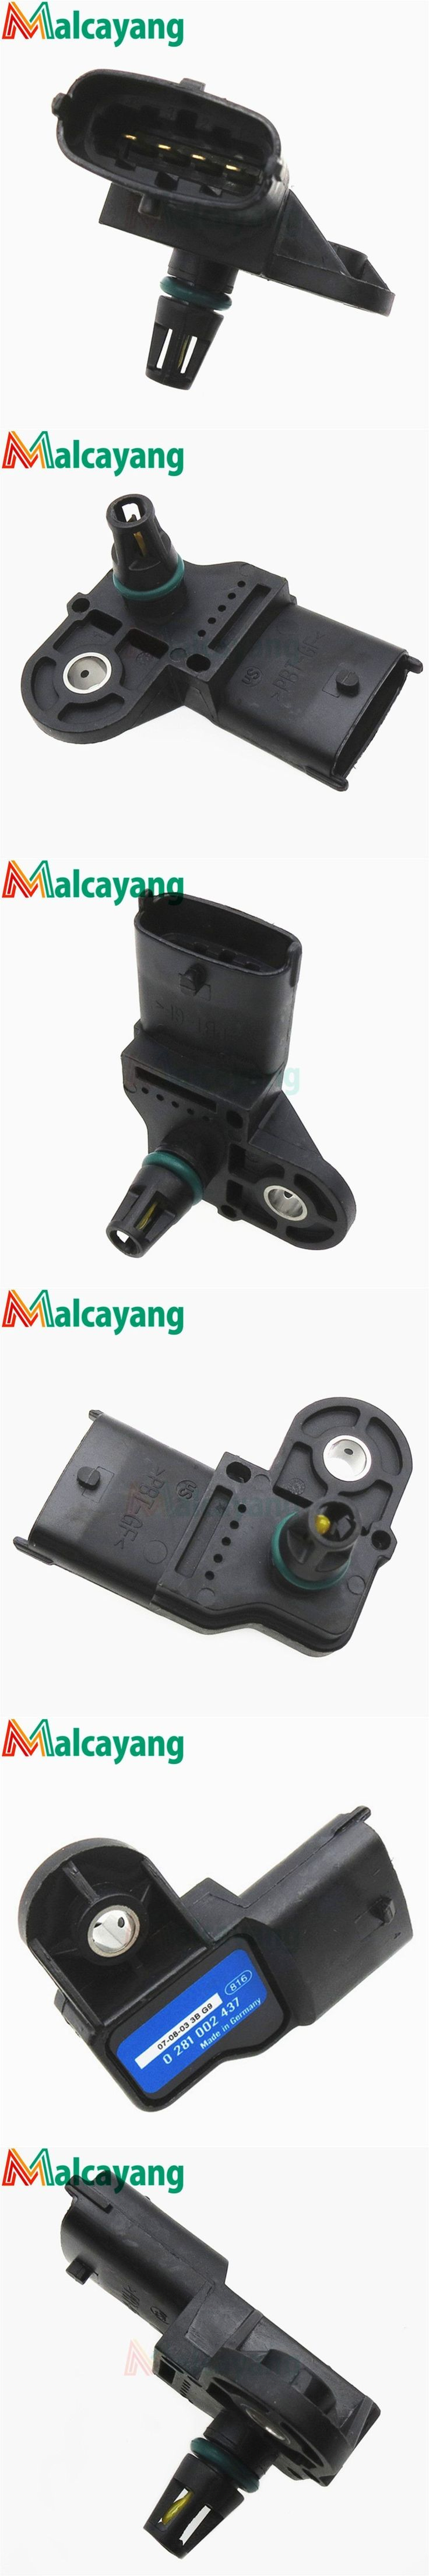 The 25 best map sensor ideas on pinterest auto electric repair air pressure map sensor for opel vauxhall vectra signum zafira astra frontera alfa romeo 147 156 fandeluxe Images